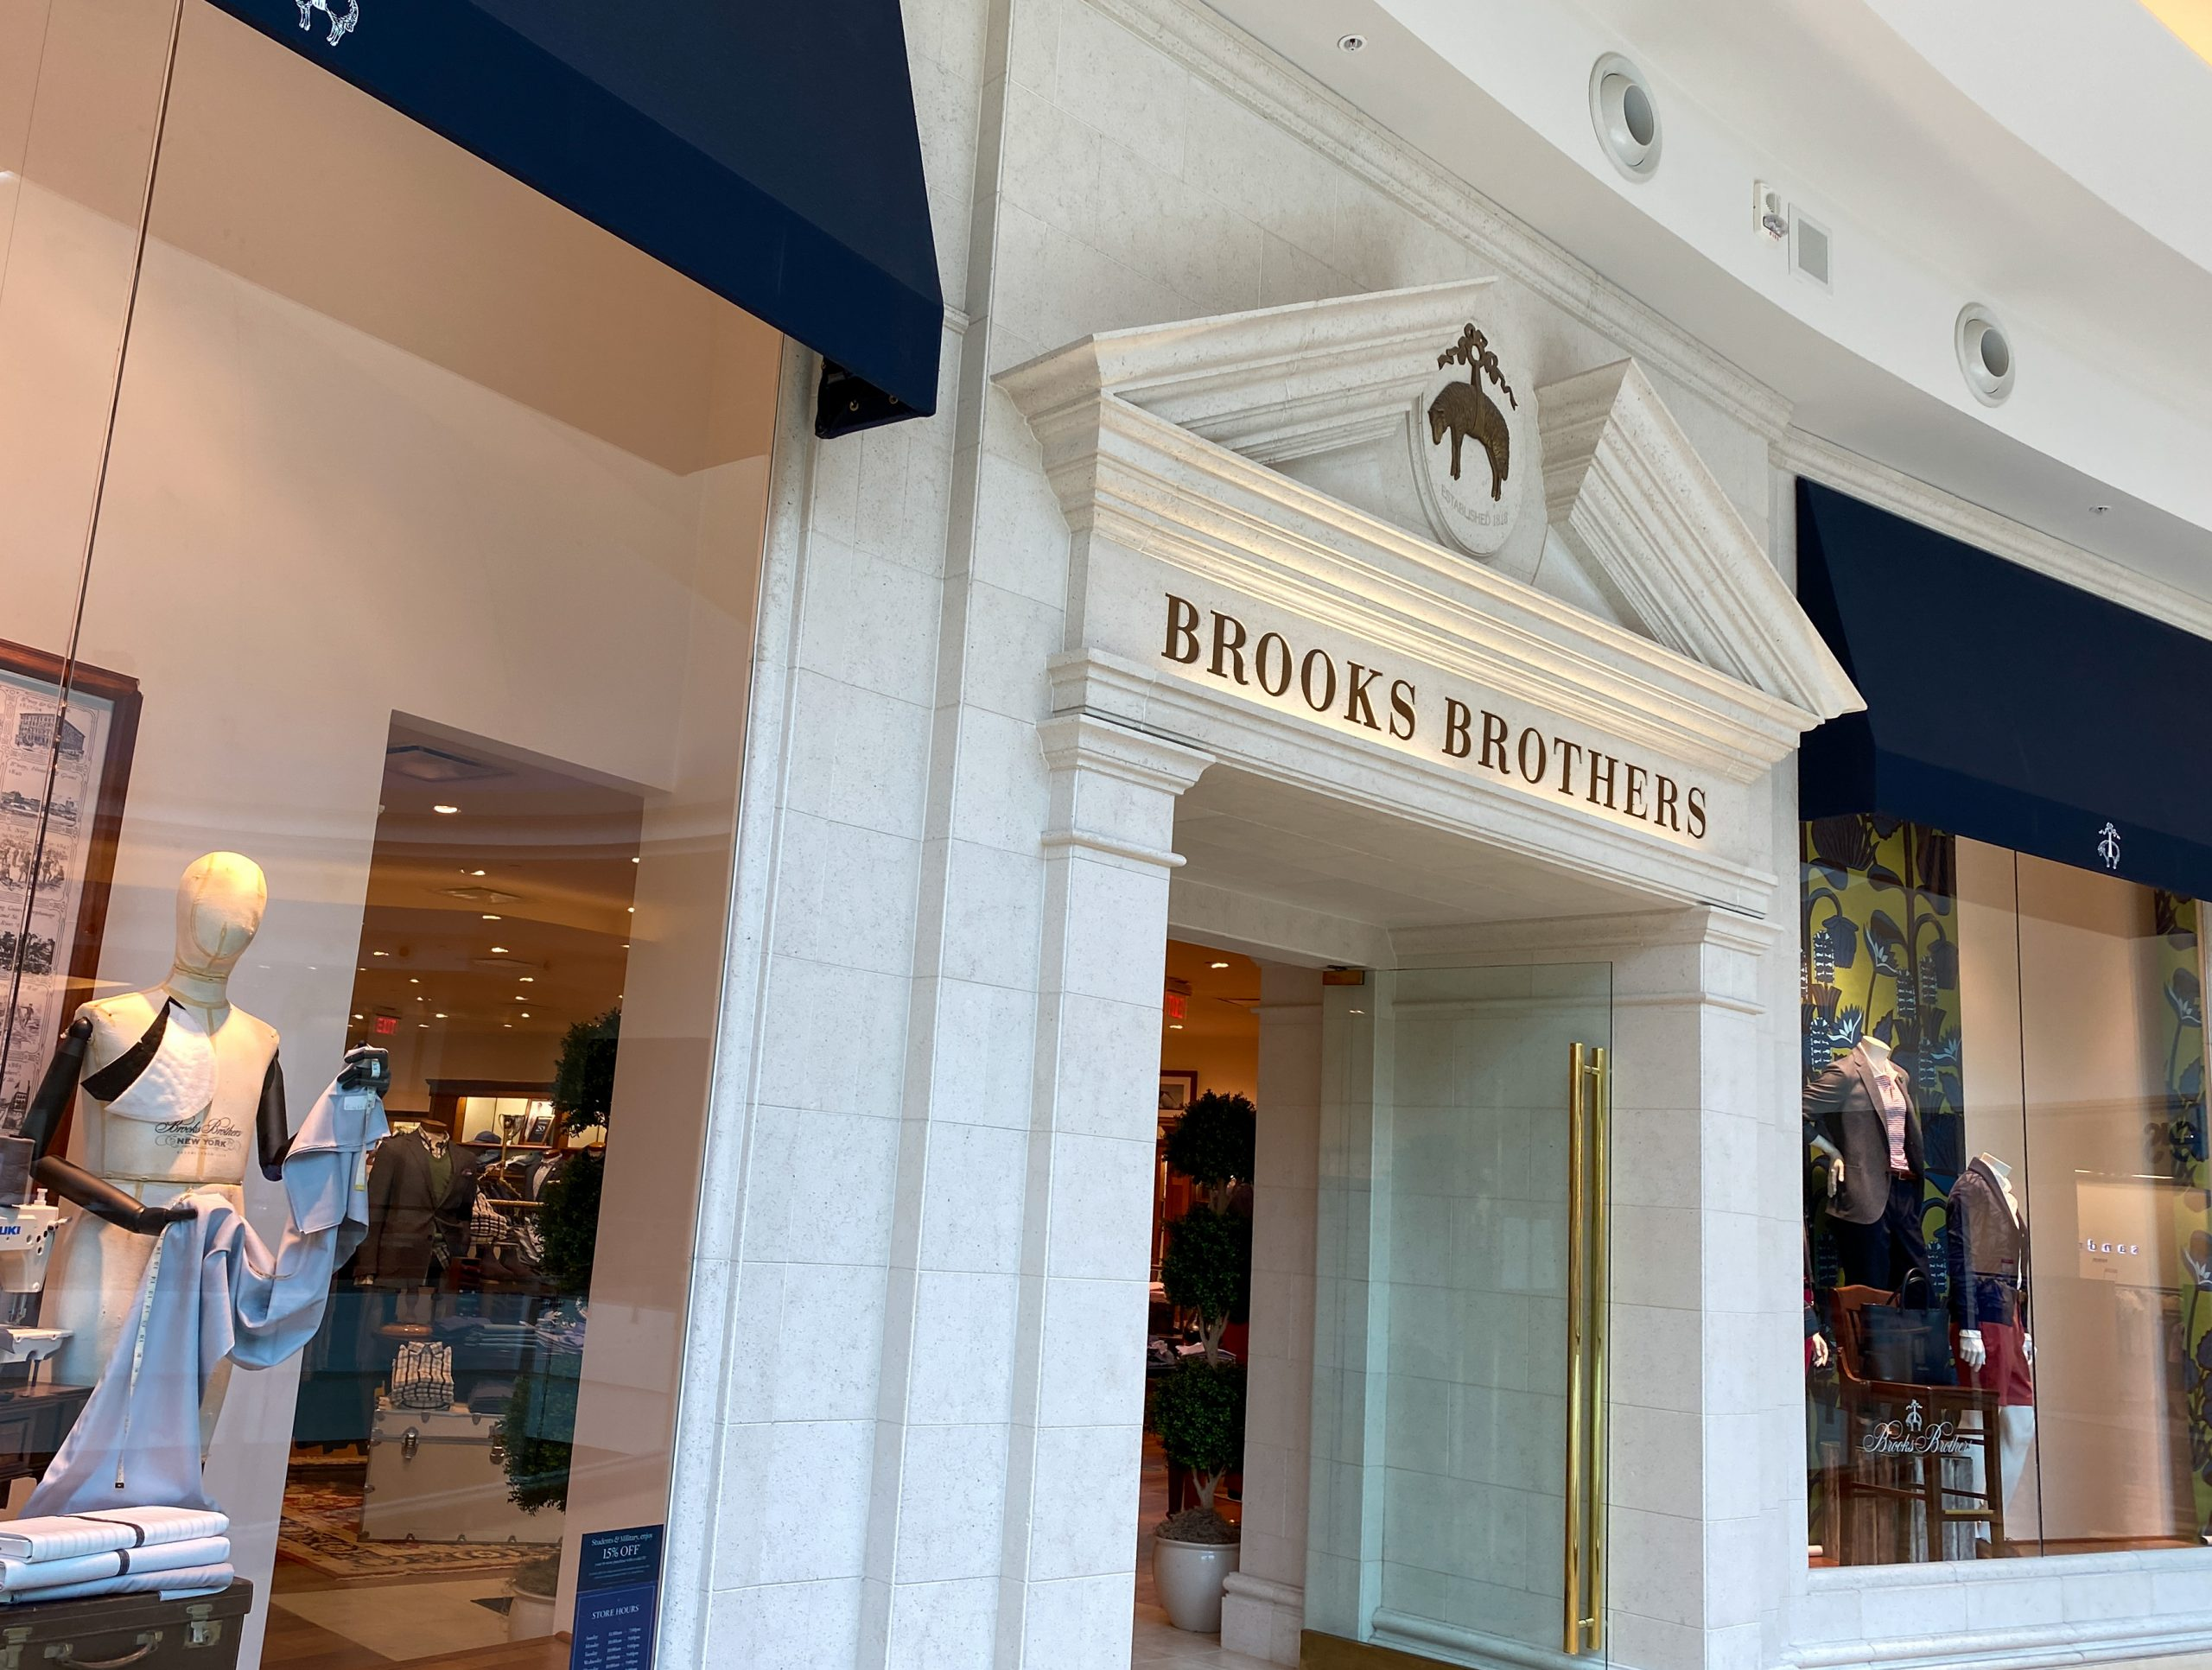 Who will take over Brooks Brothers, the mythical brand of USA presidents?